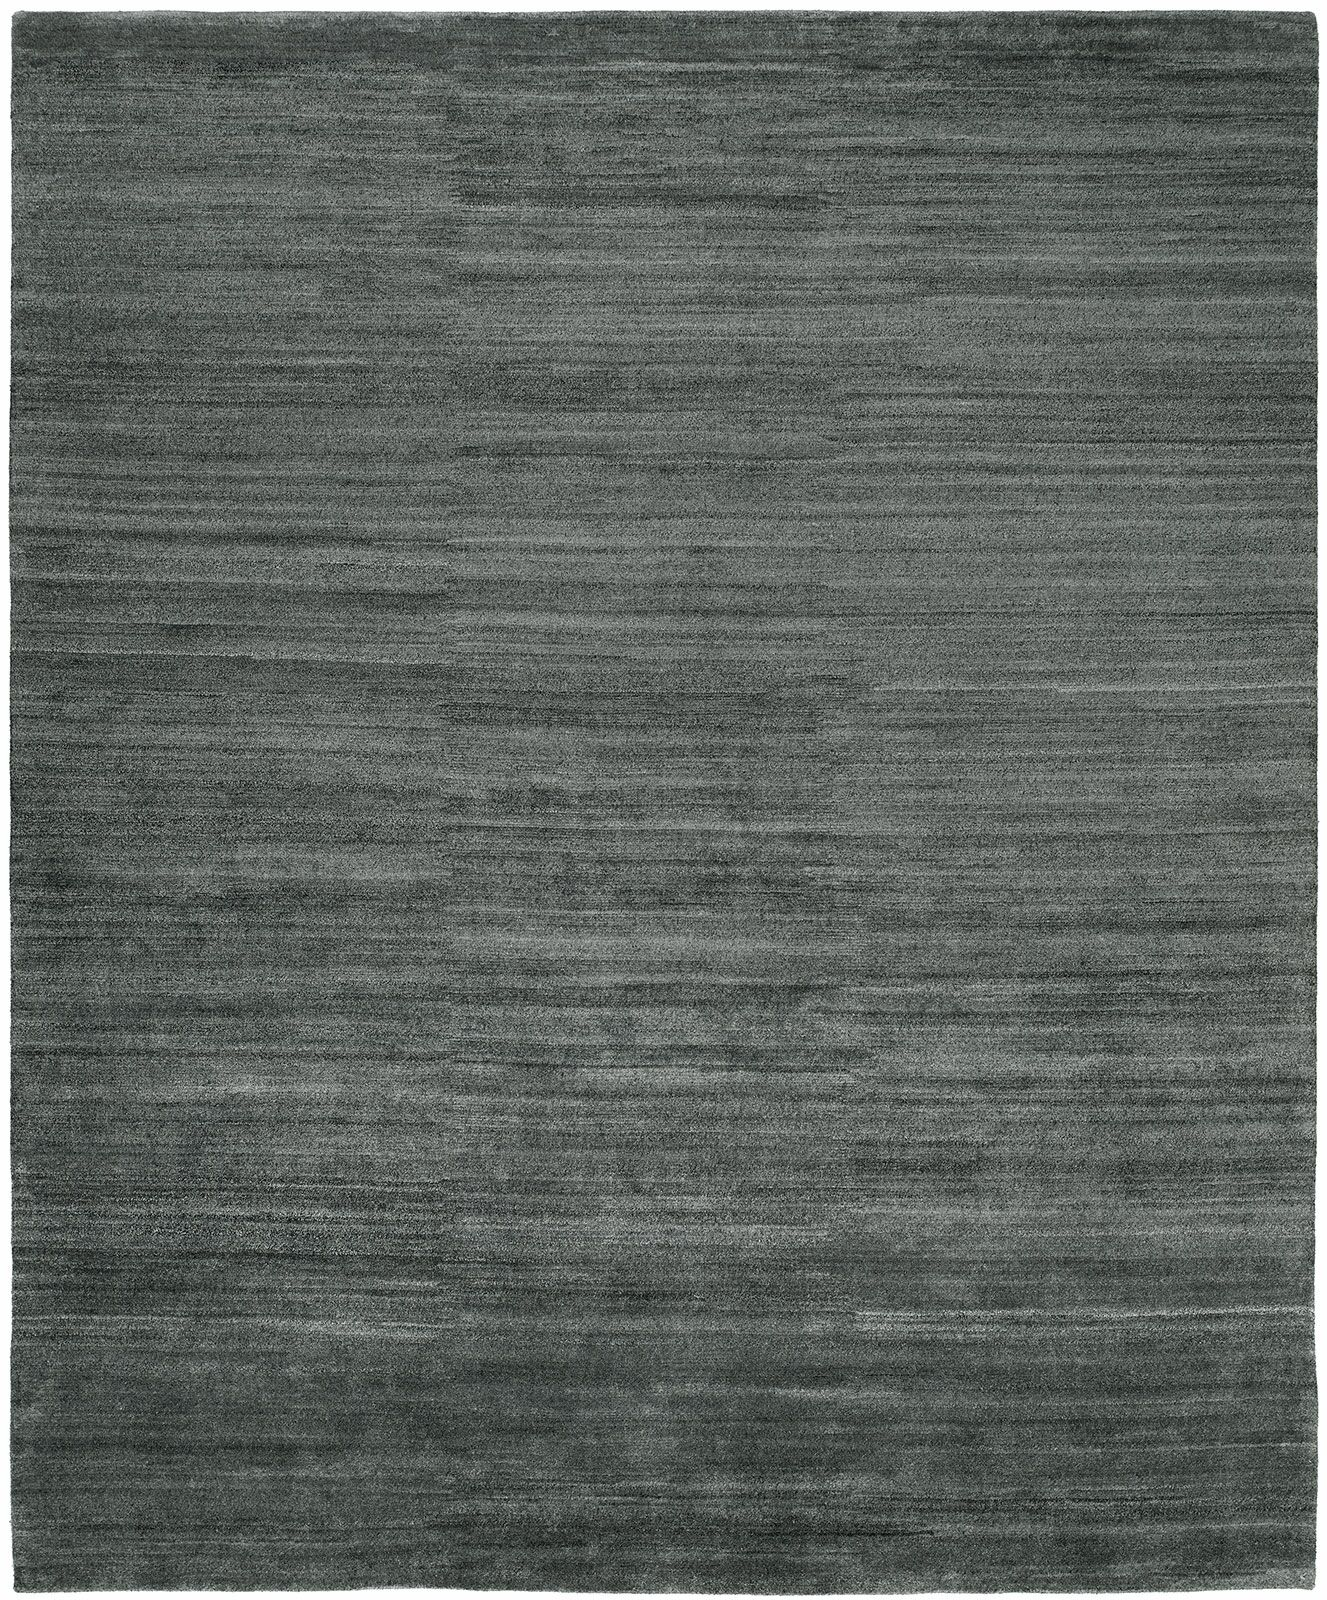 Signe Hand-Knotted Wool Gray Area Rug Rug Size: Rectangle 10' x 14'